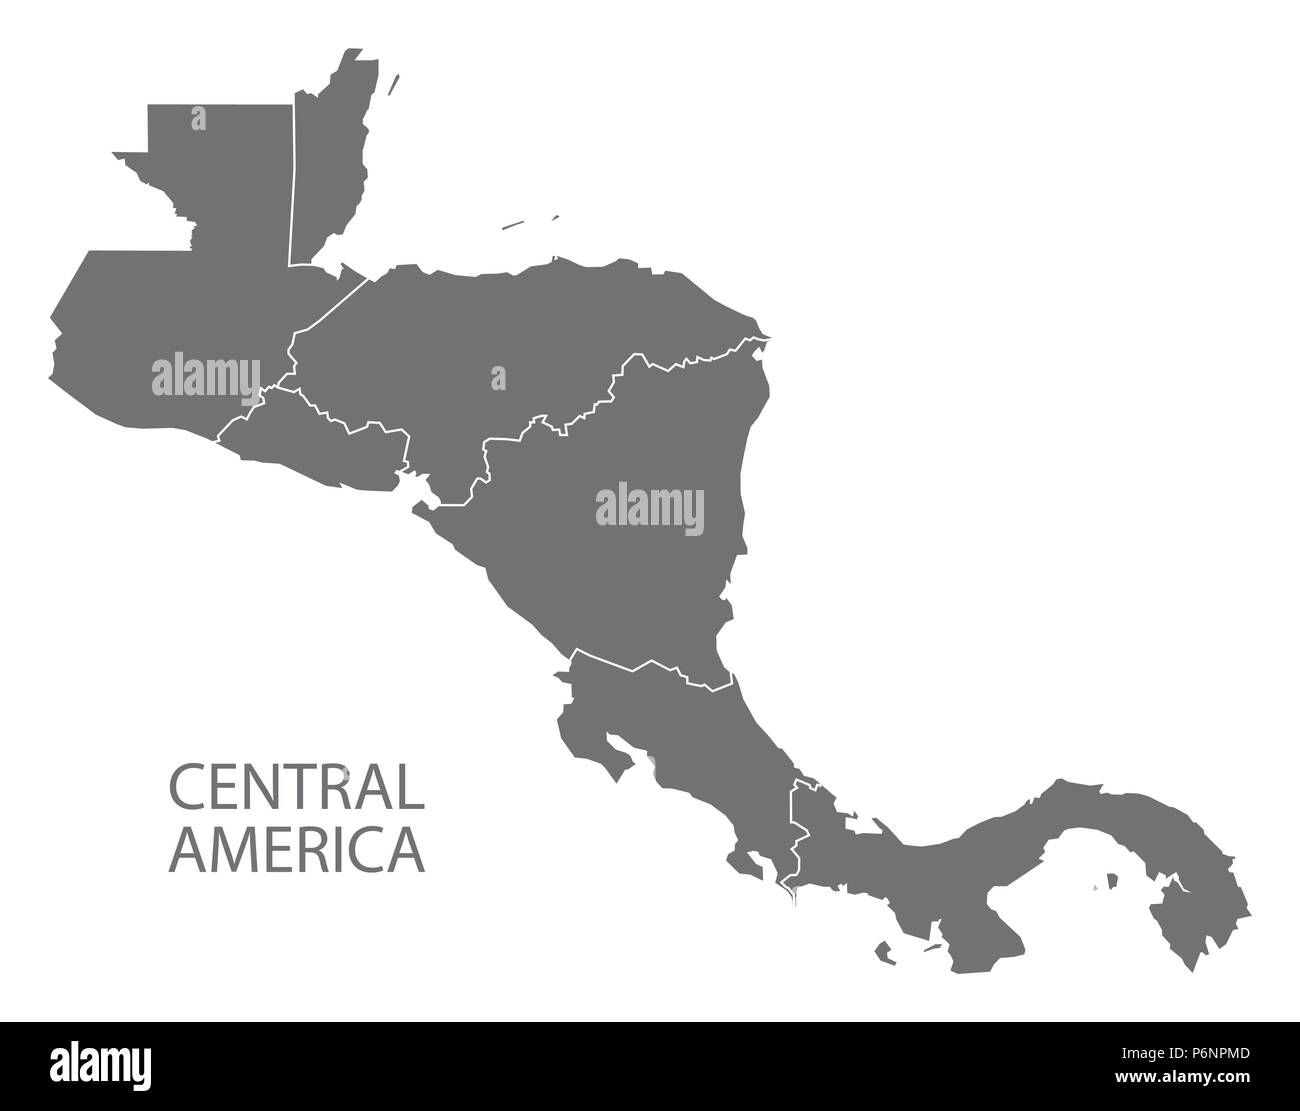 Central America map with country borders grey illustration Stock ...